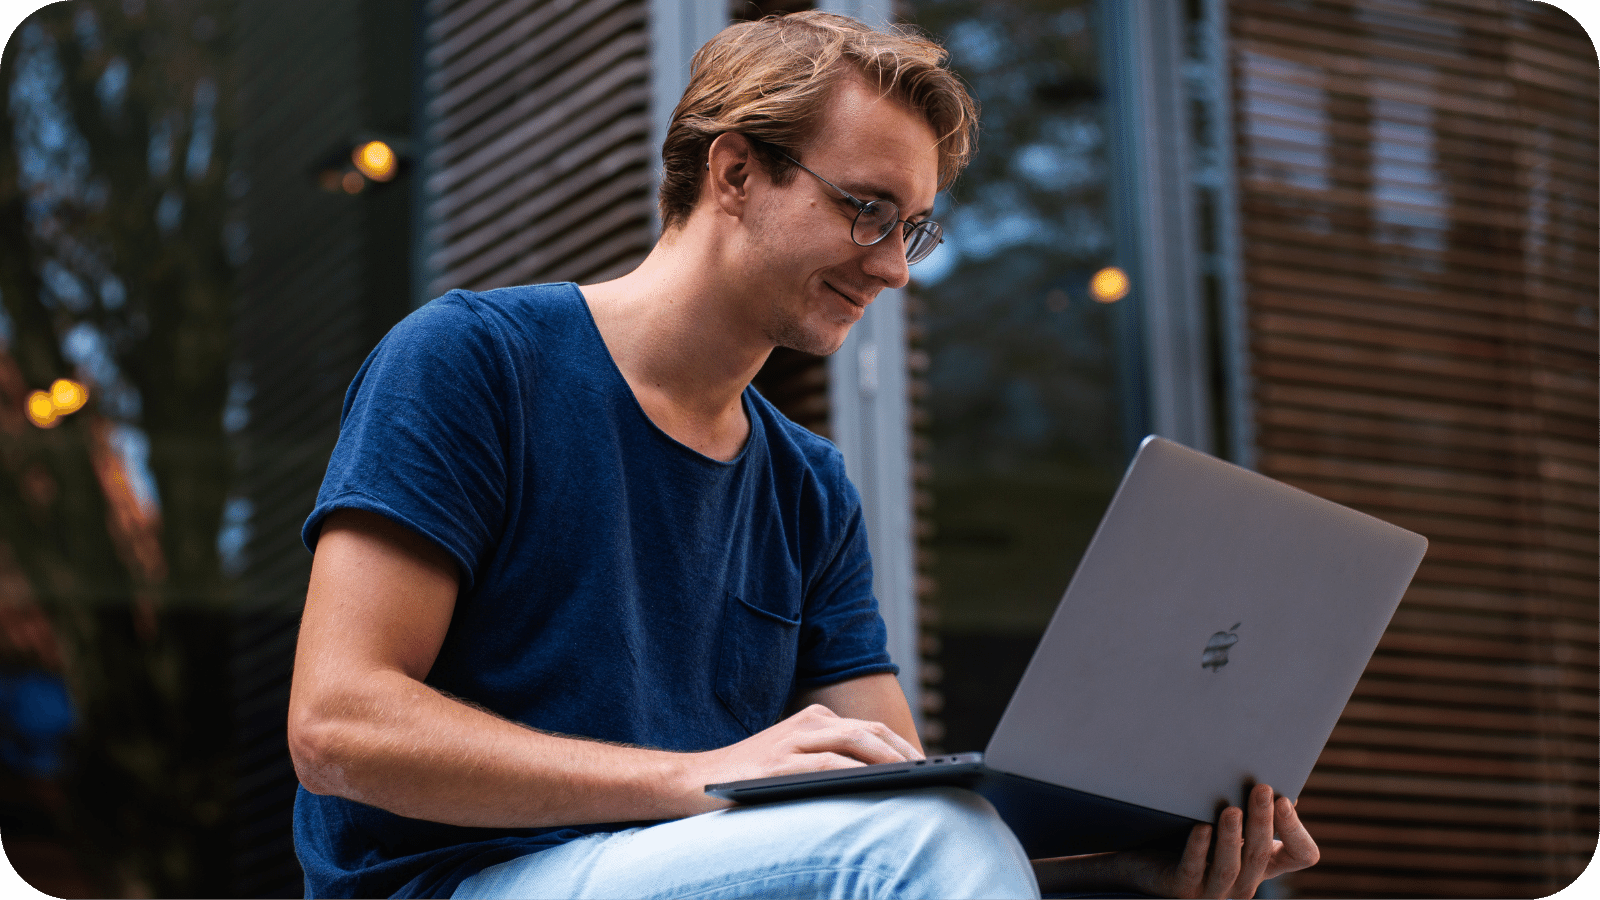 A man using a laptop while sitting casually outdoors